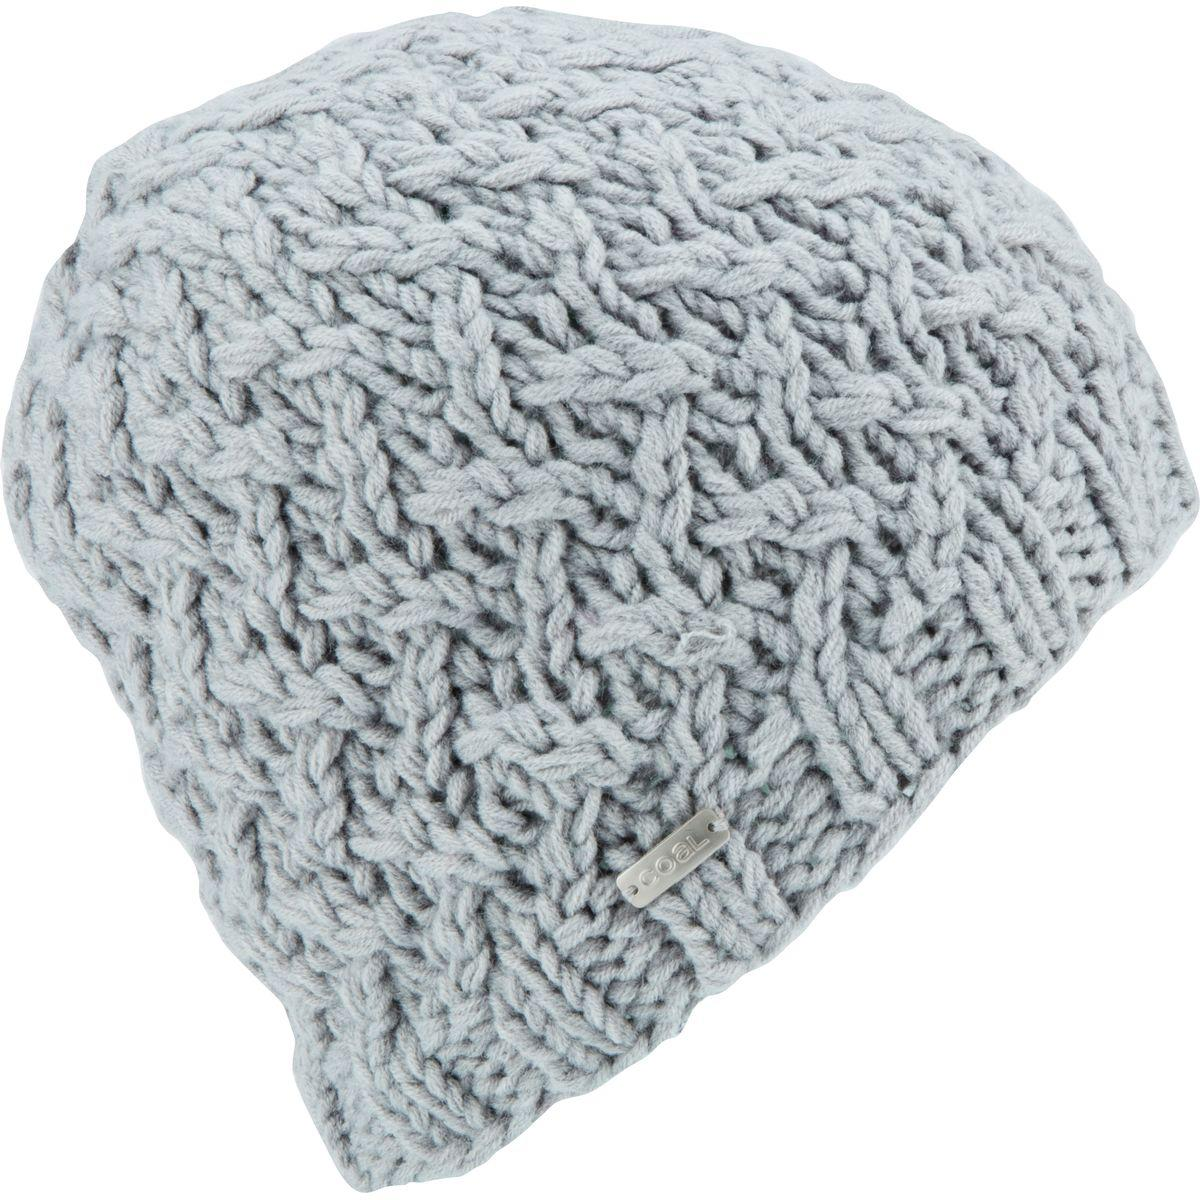 Lyst - Coal The Whitney Beanie in Gray 22a1b7d660a